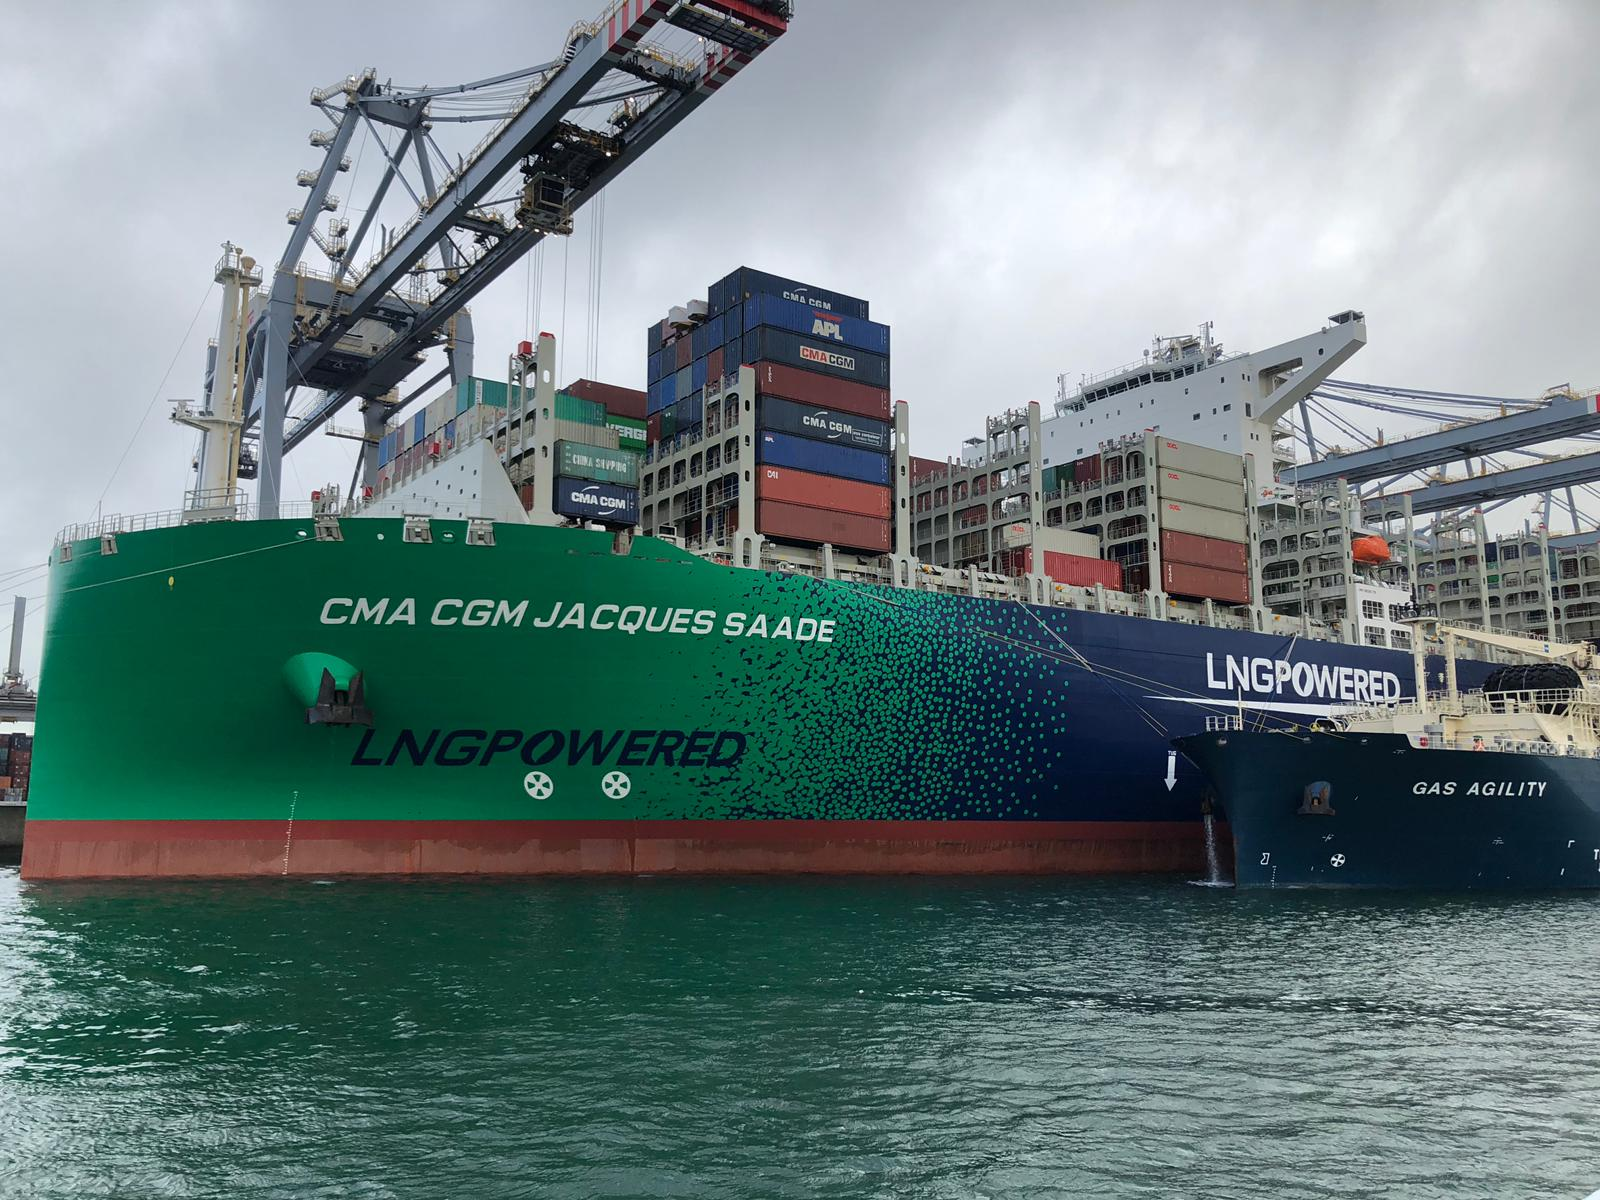 European Parliament wants roadmap for zero-emission shipping by 2050